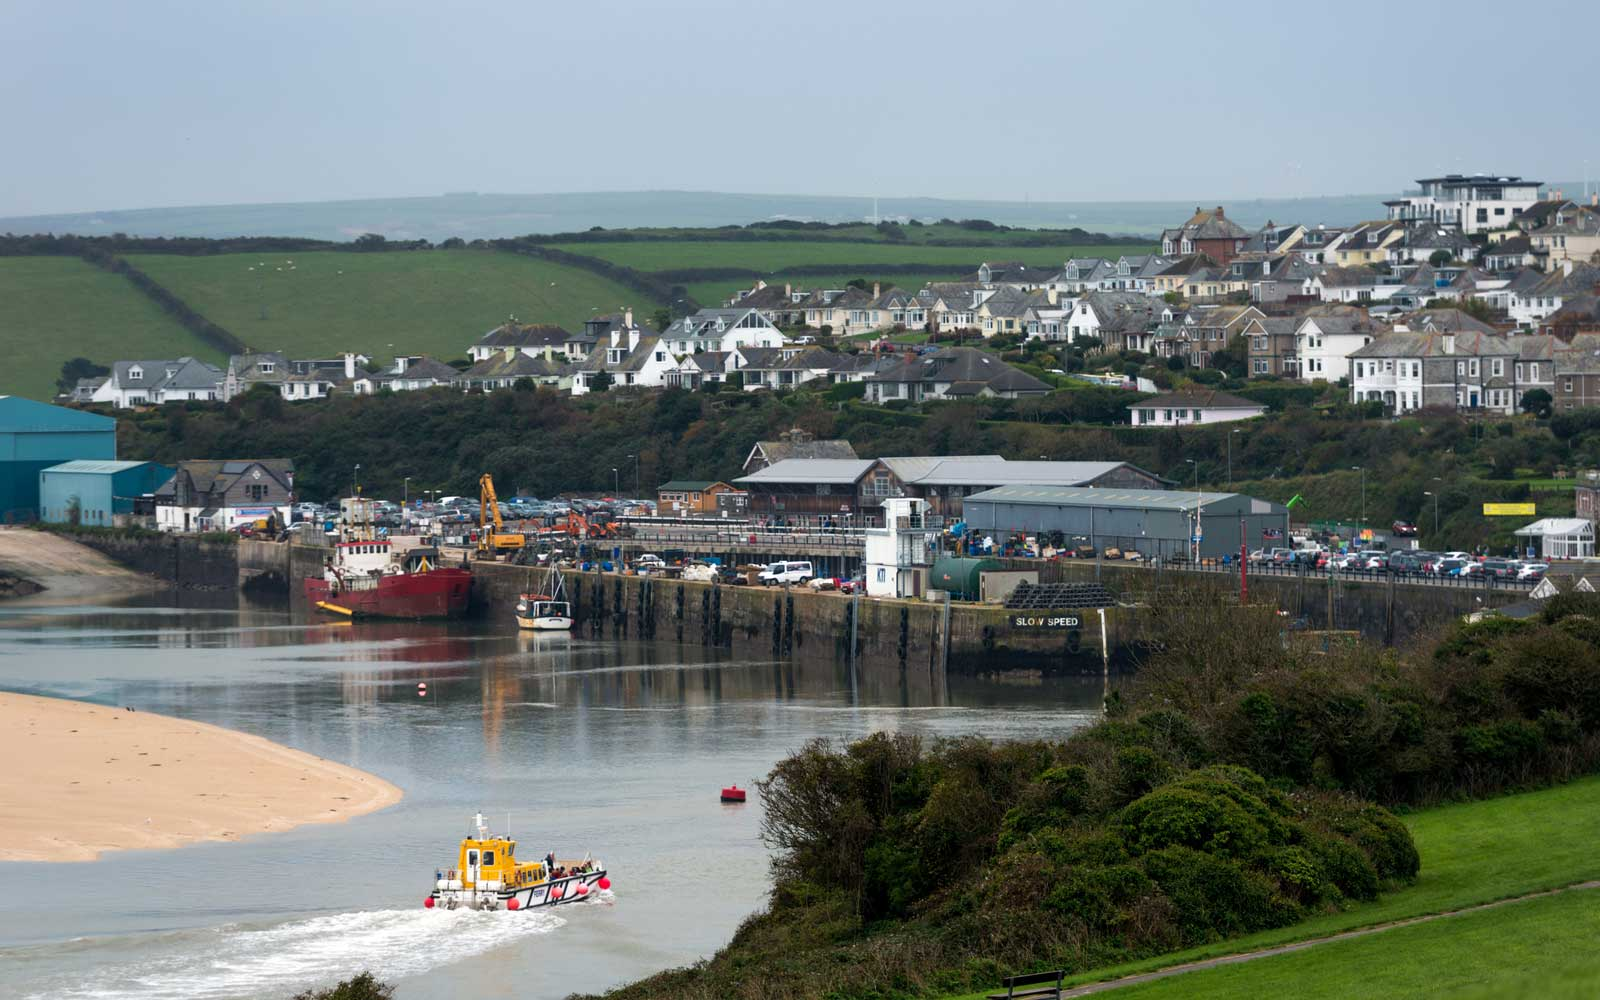 The Padstow to Rock Ferry is in North Cornwall, UK, England, and ferries passengers across the Camel Estuary between the villages of Padstow and Rock.